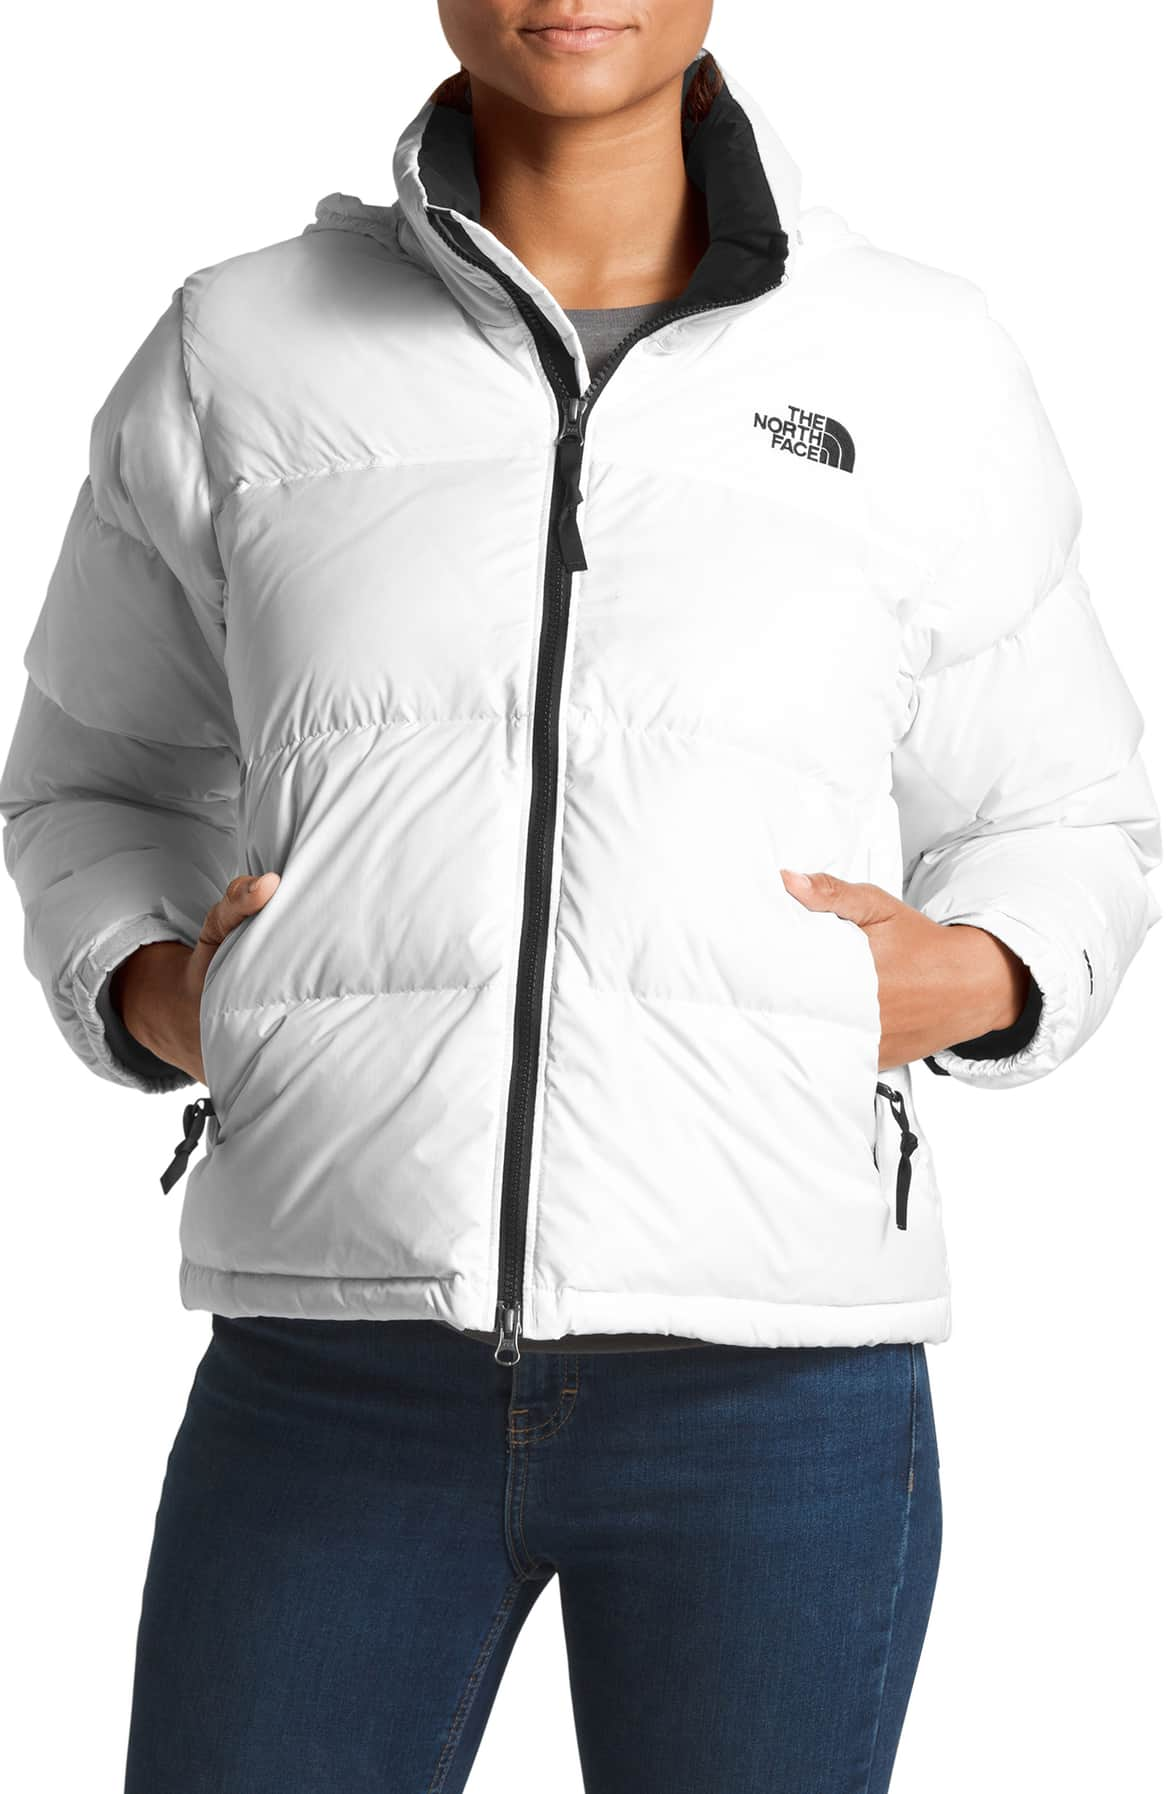 <p>This retro North Face jacket is based on a baffle-quilted, down-insulated design from 1996 and offers unmatched warmth in cold weather. Cute beyond the mountain for sure.{&amp;nbsp;} 249.00 (Image: Nordstrom)</p><p></p>